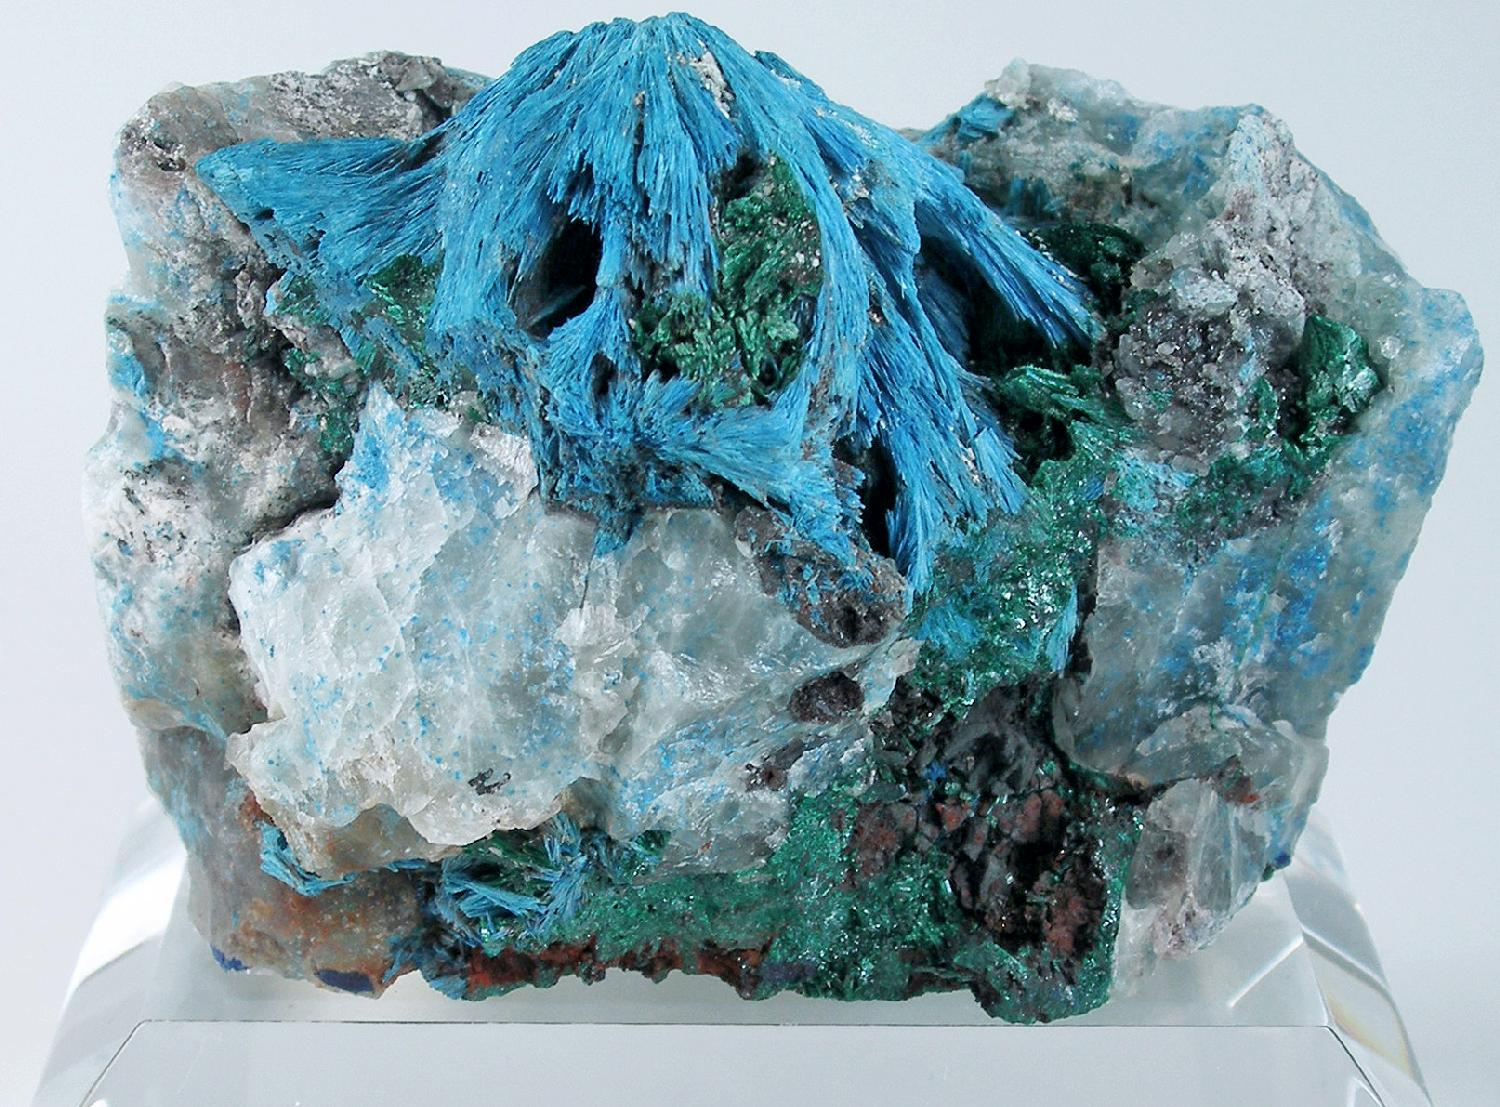 A rare crystallized shattuckite specimen Crystals uncommonly seen